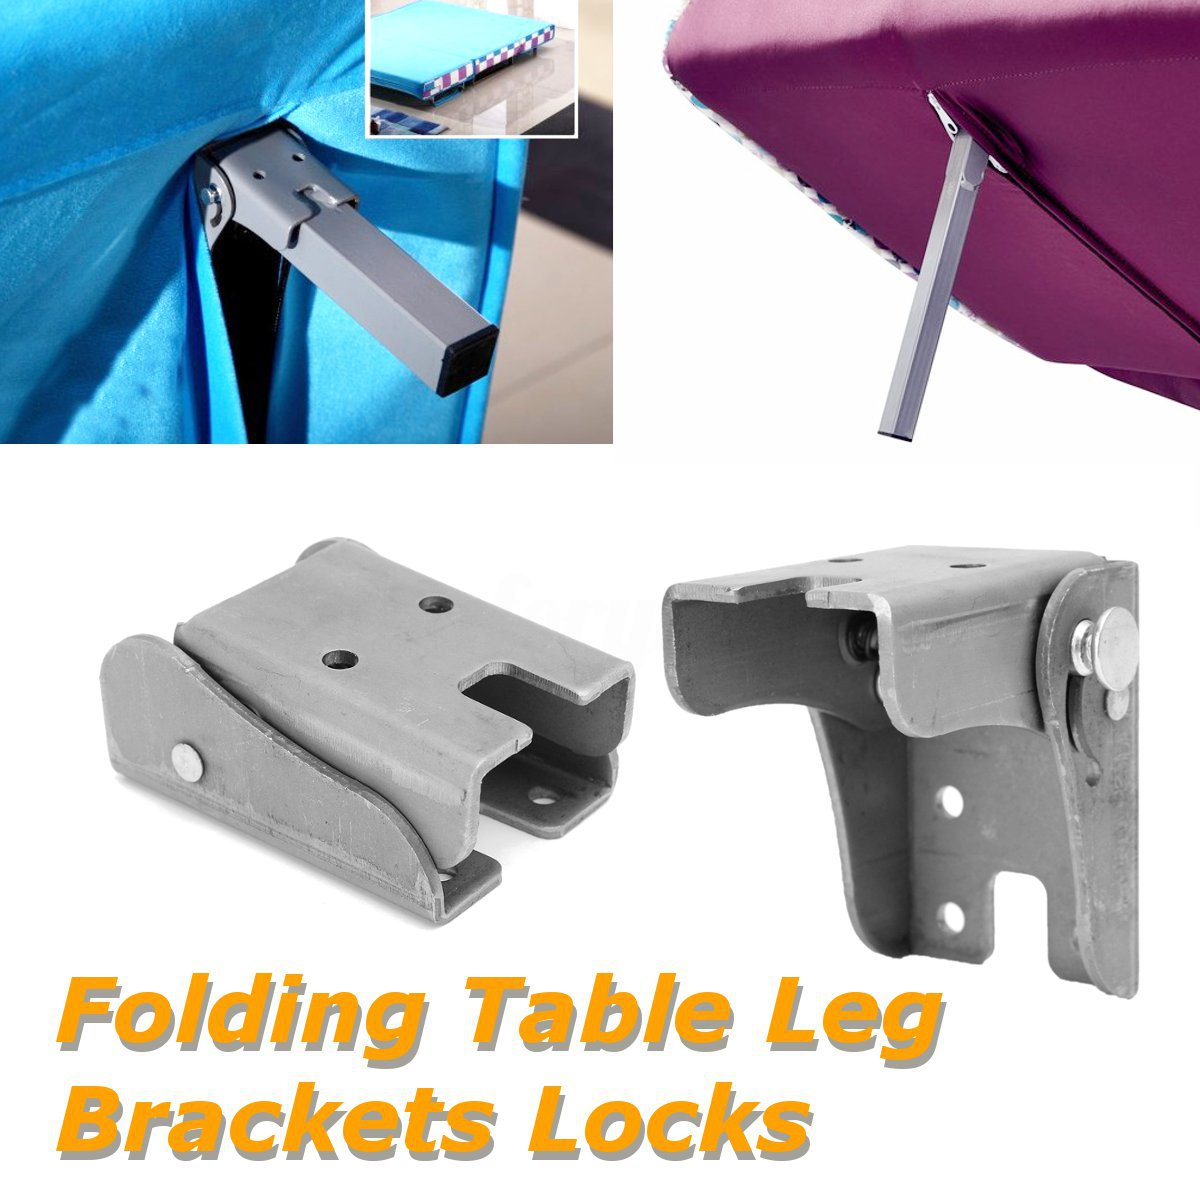 Details About 124pcs Diy Folding Table Leg Bracket Fittings Self Lock Foldable Feet Hinges with regard to dimensions 1200 X 1200